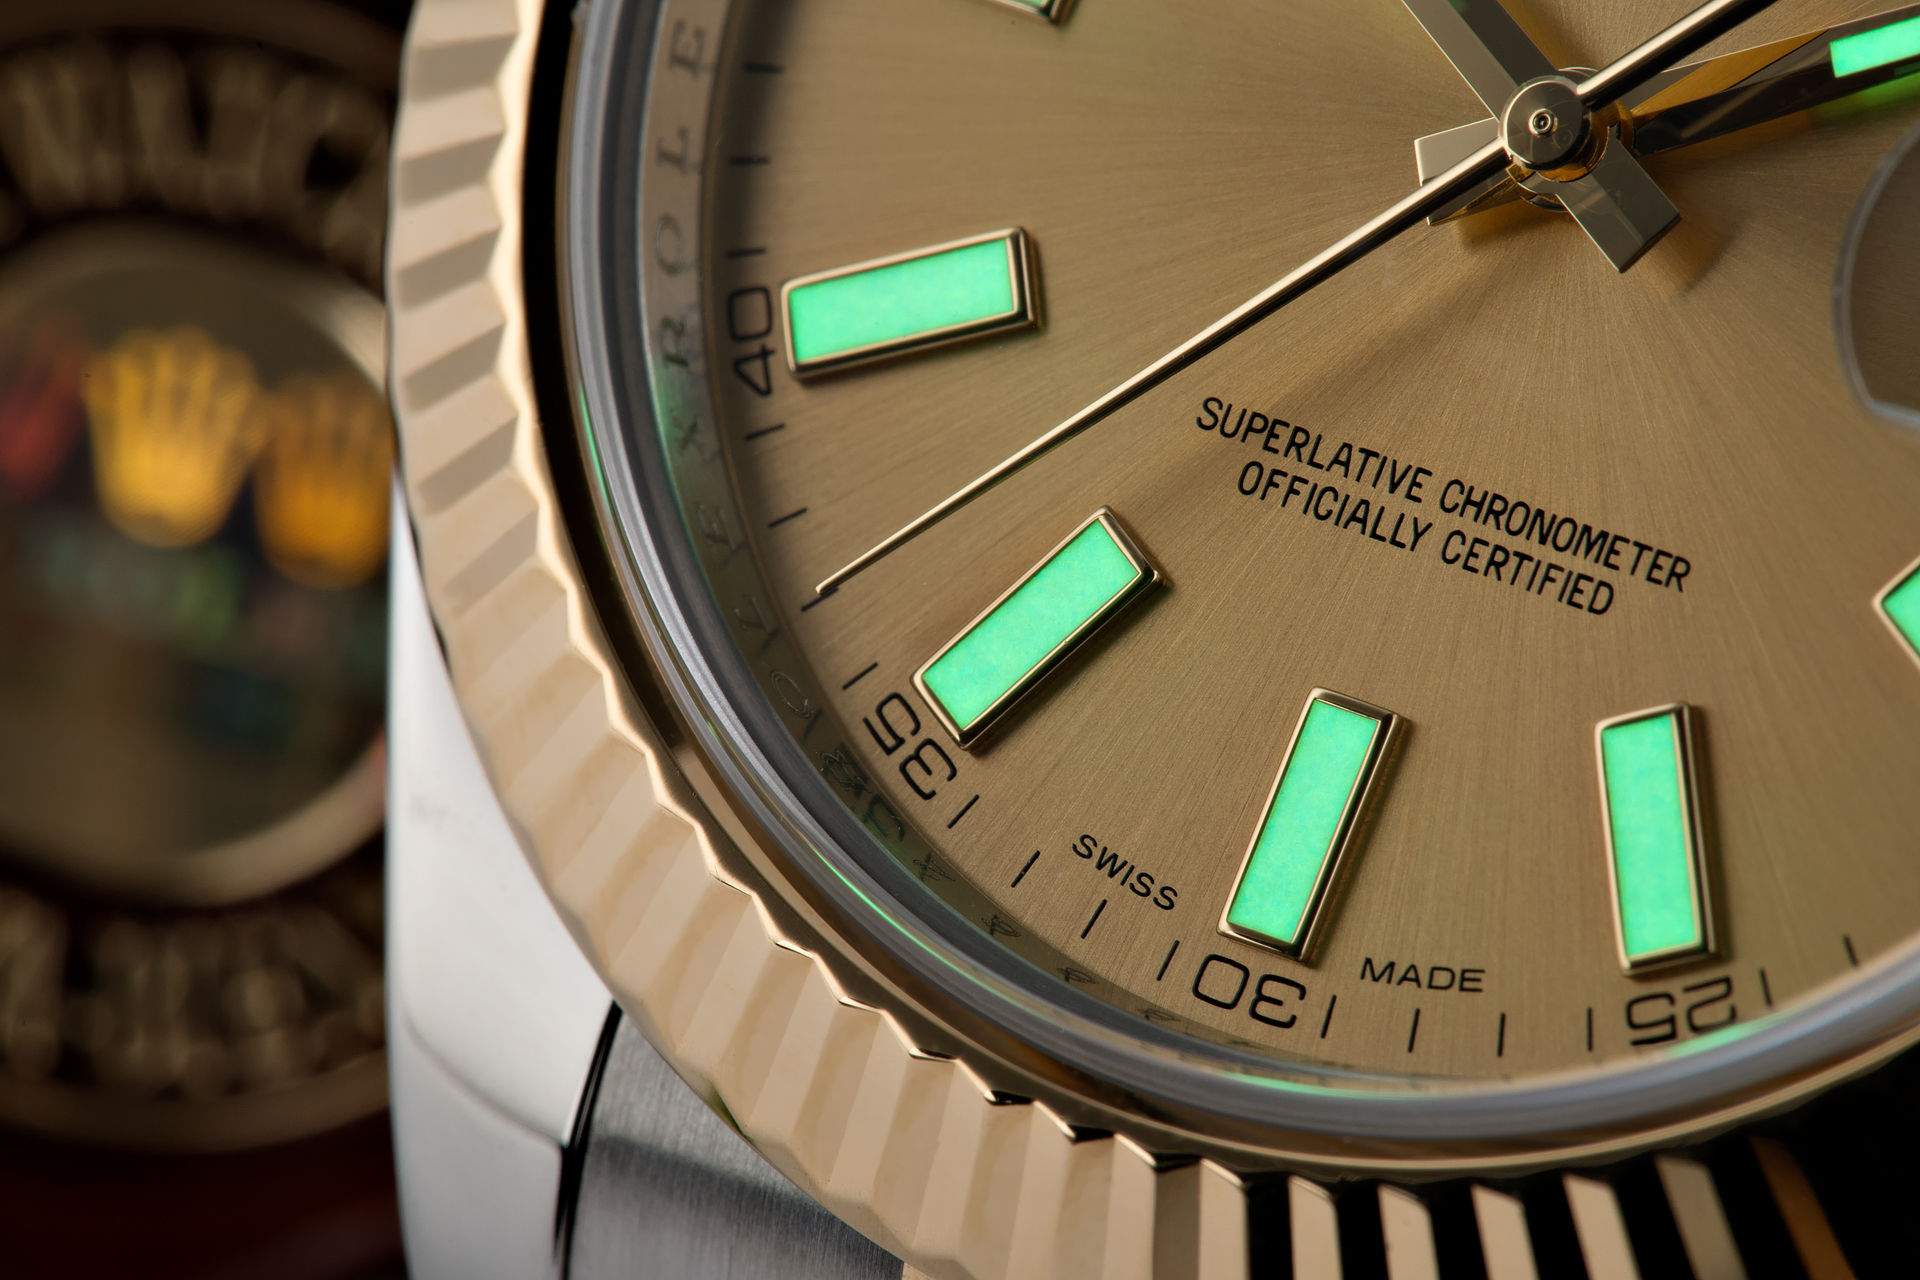 ref 116333 | 41mm Box & Papers | Rolex Datejust II